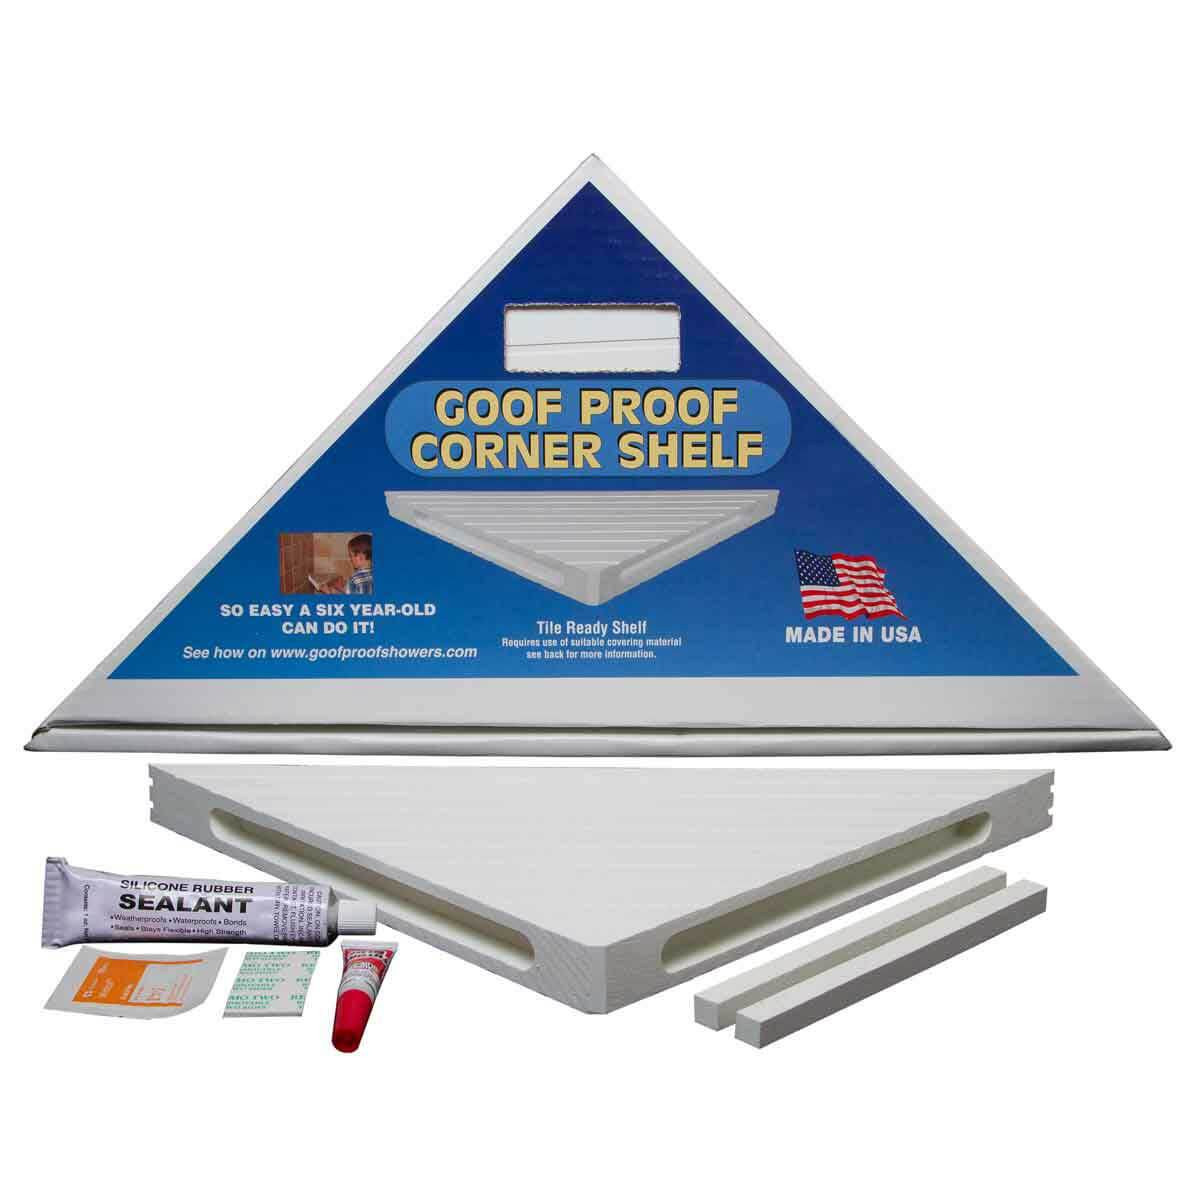 Mark E. Industries Goof Proof Corner Shelf